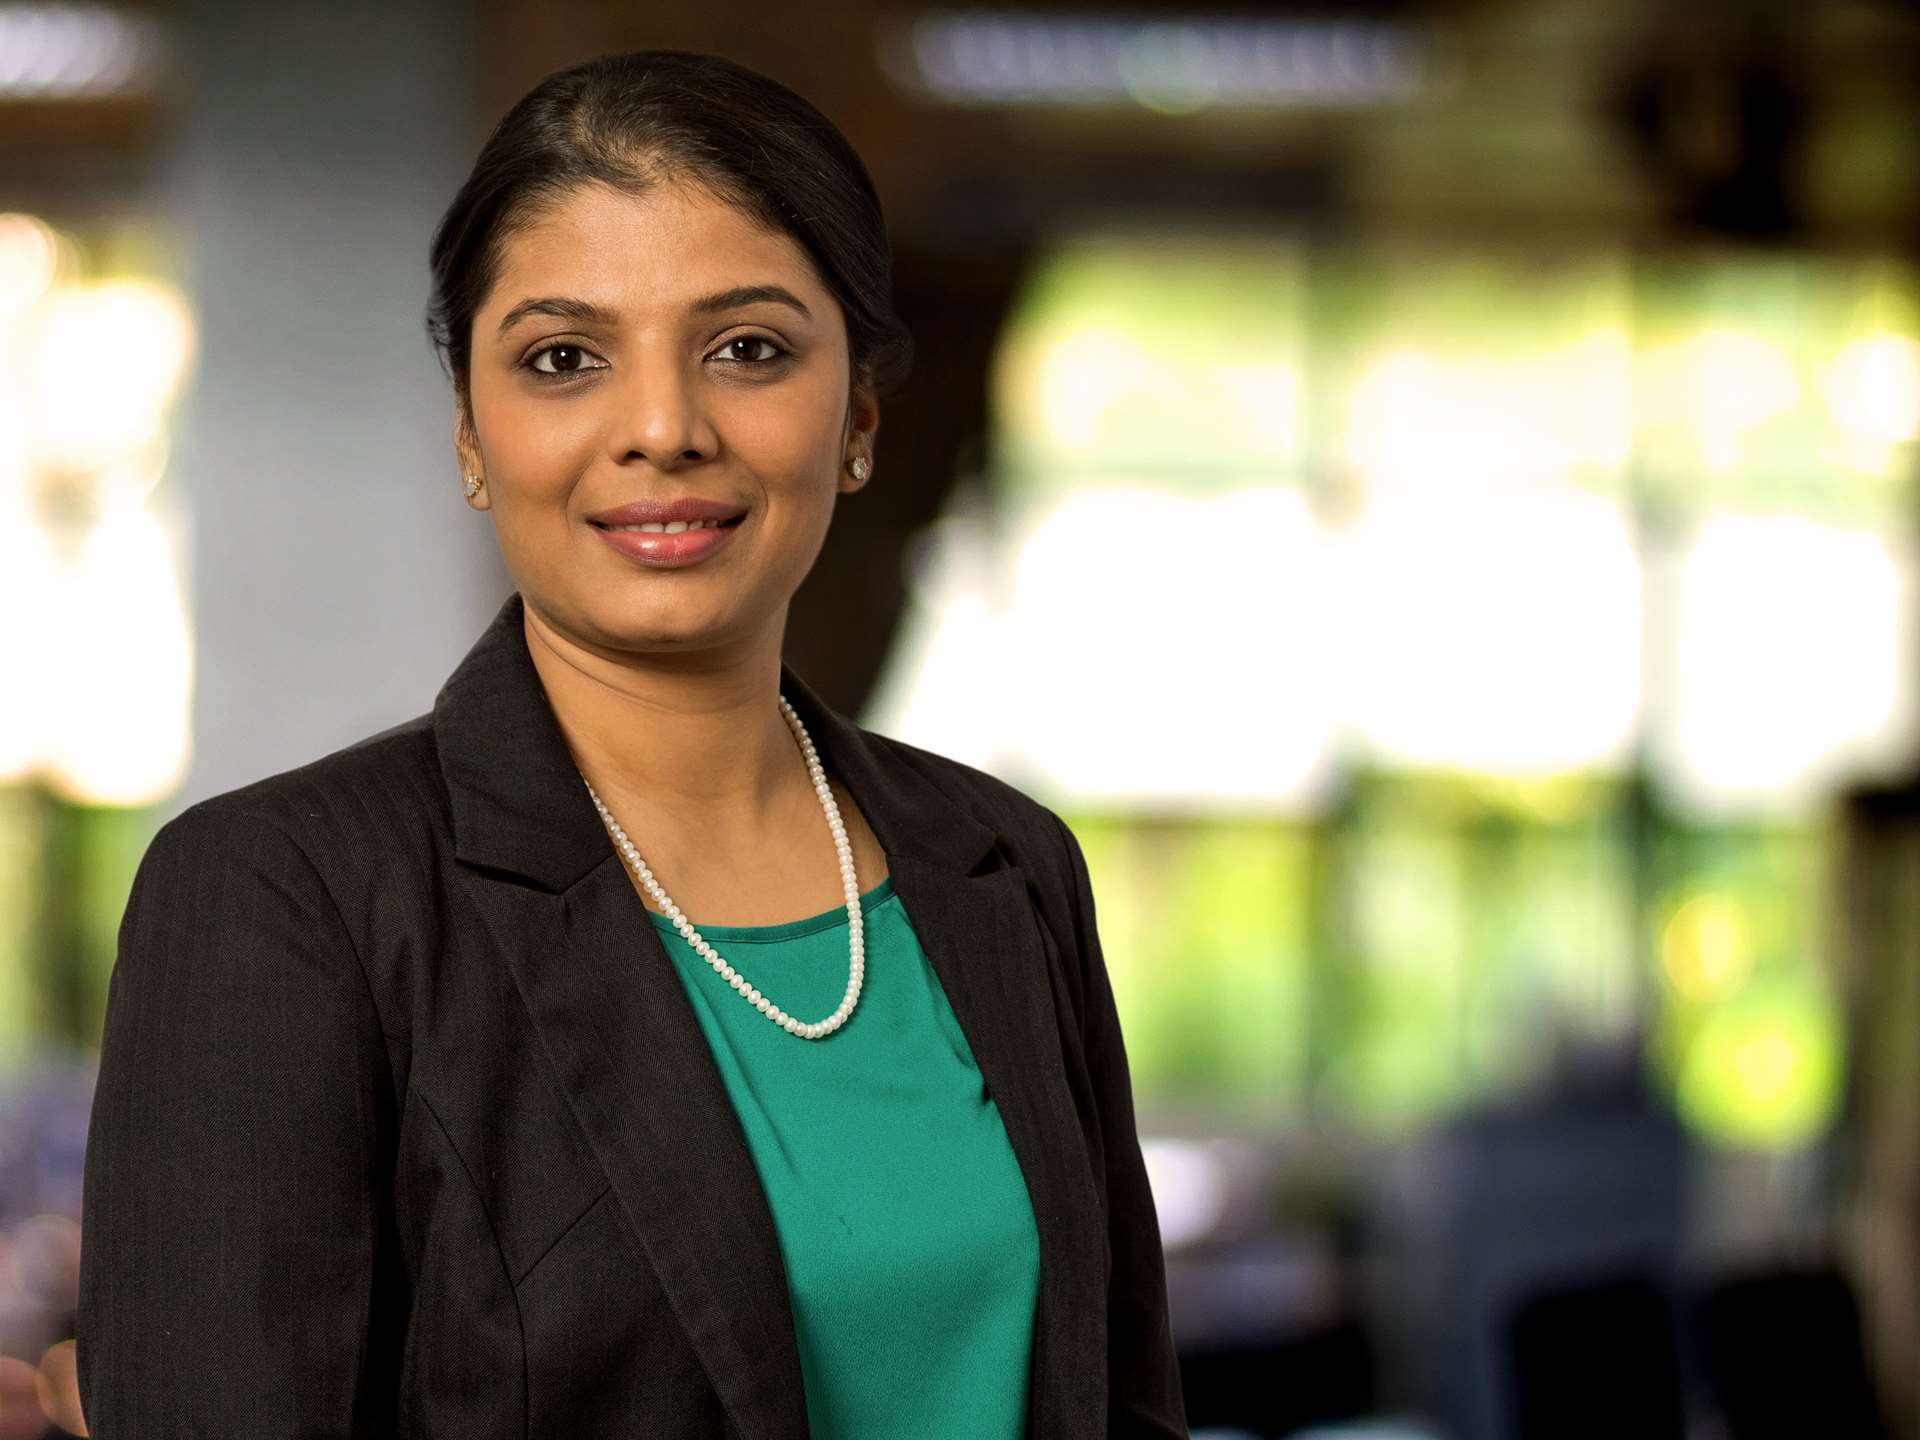 Nidhi Seksaria, MBA, Advisory Partner, BDO India